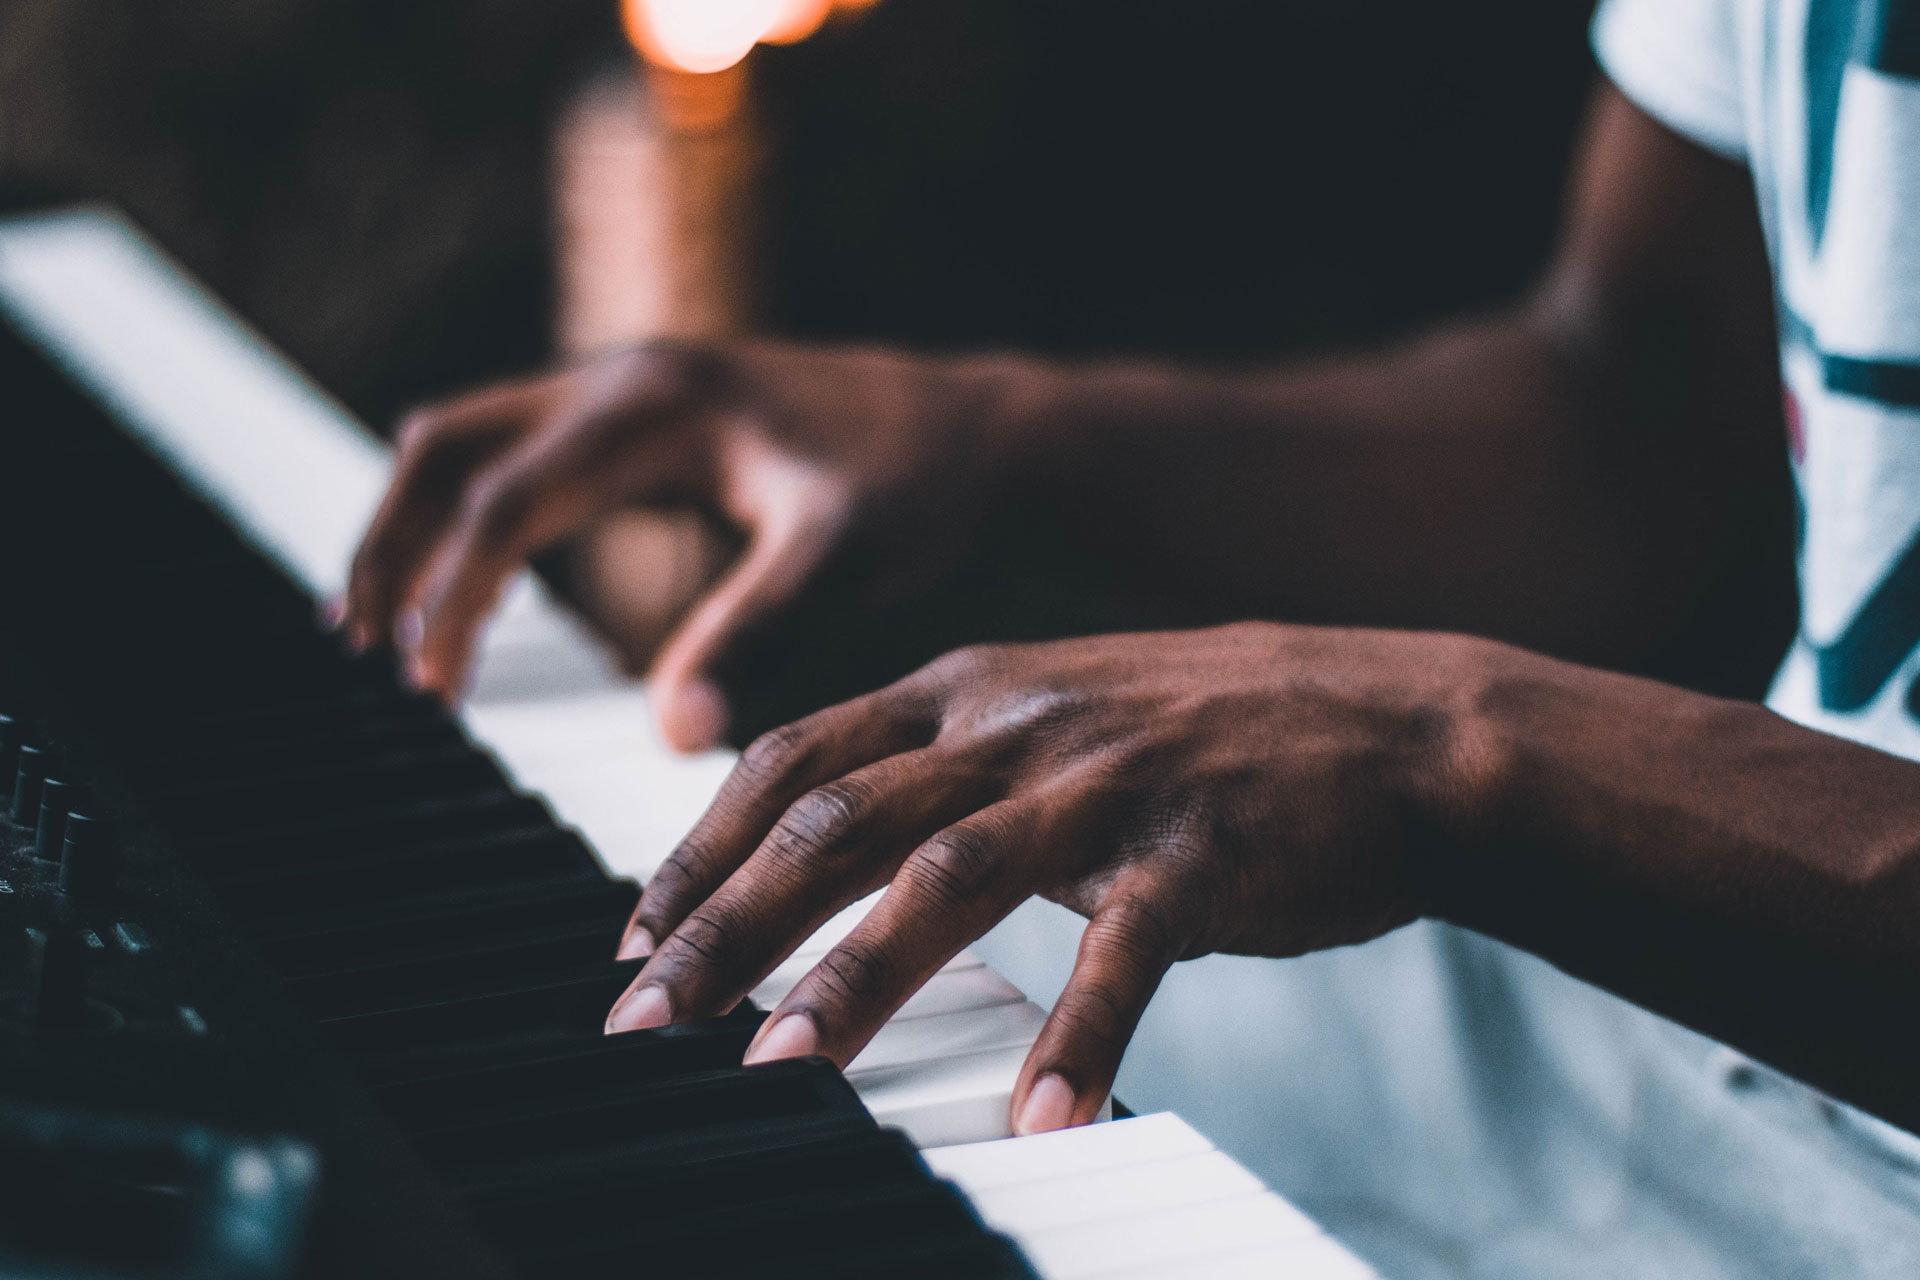 piano-ology-how-your-body-and-the-piano-work-together-featured-photo-by-austin-pacheco-on-unsplash